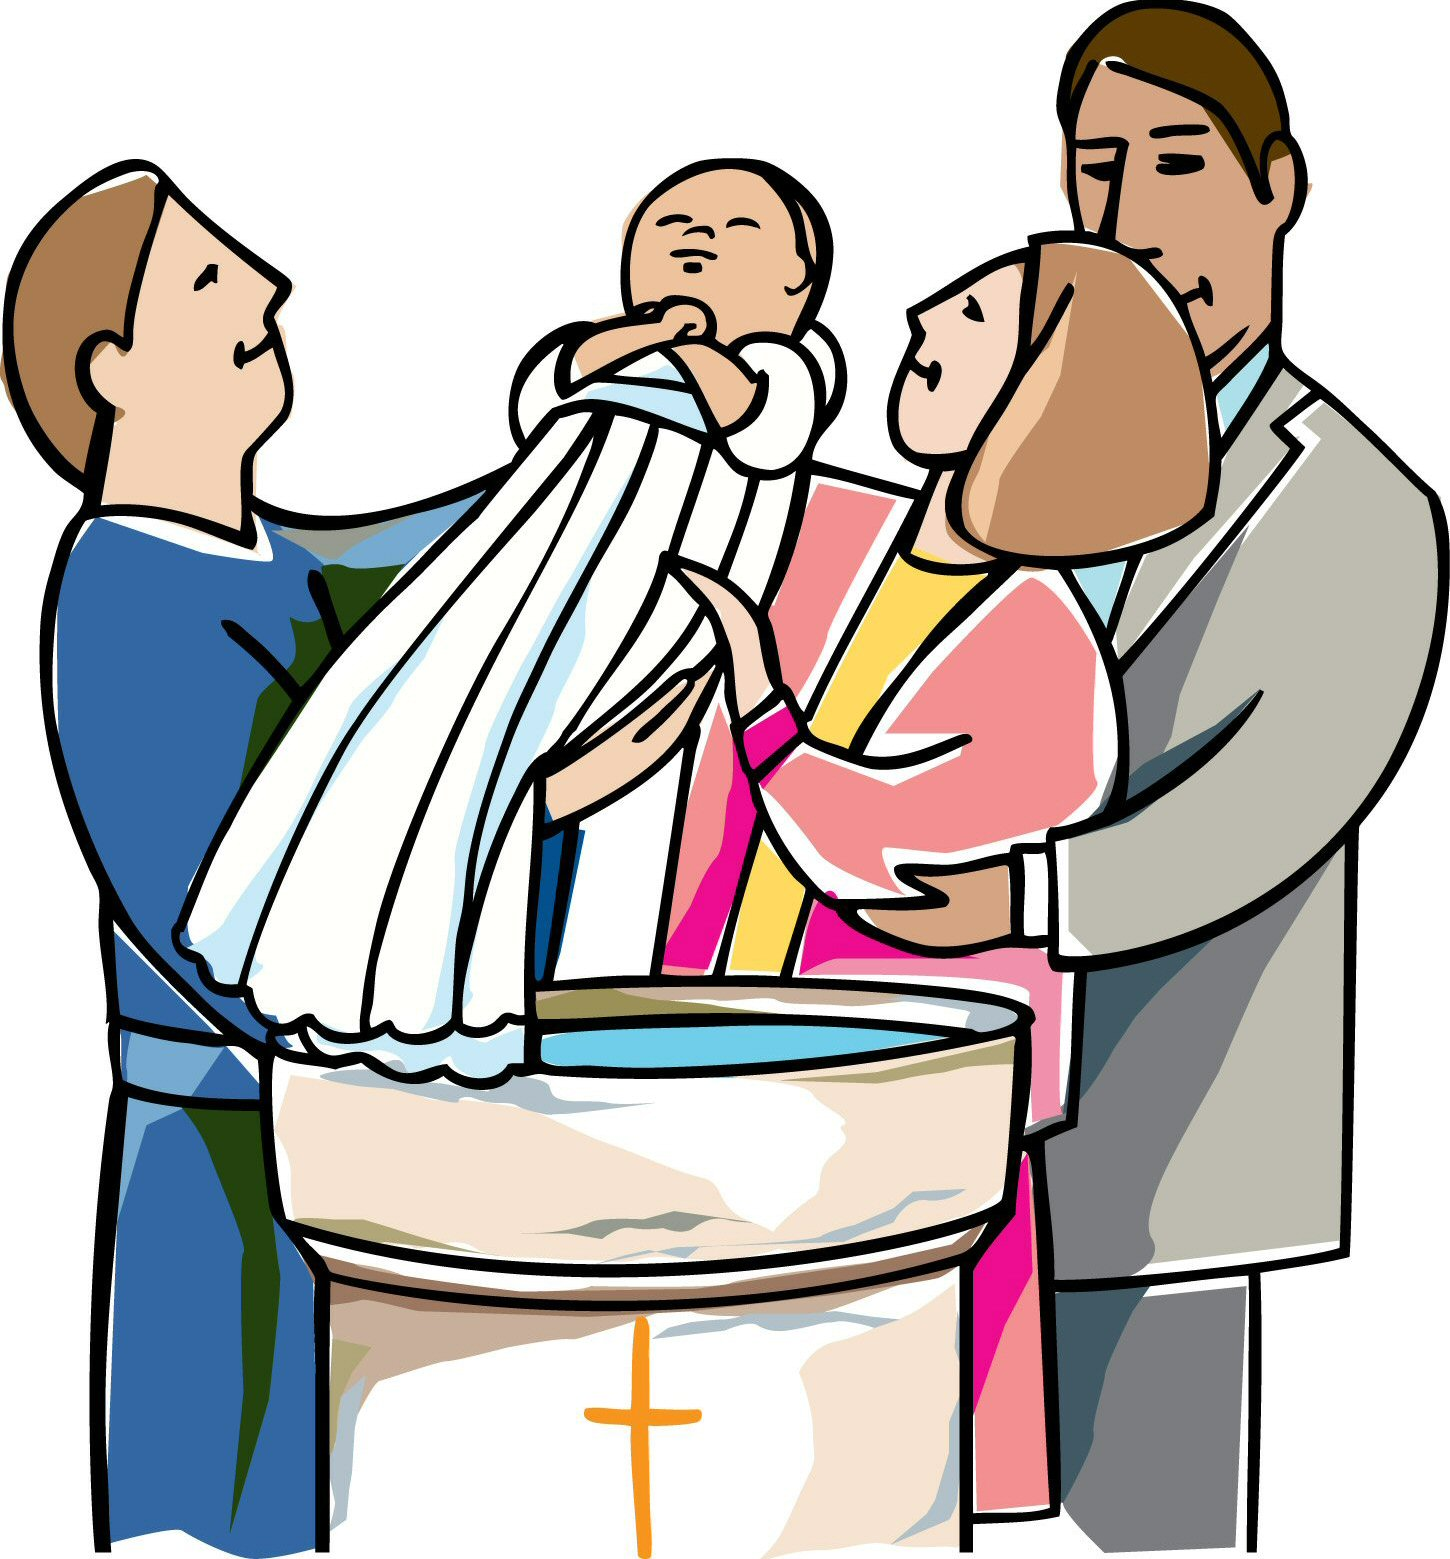 Baptism clipart. Collection of free download